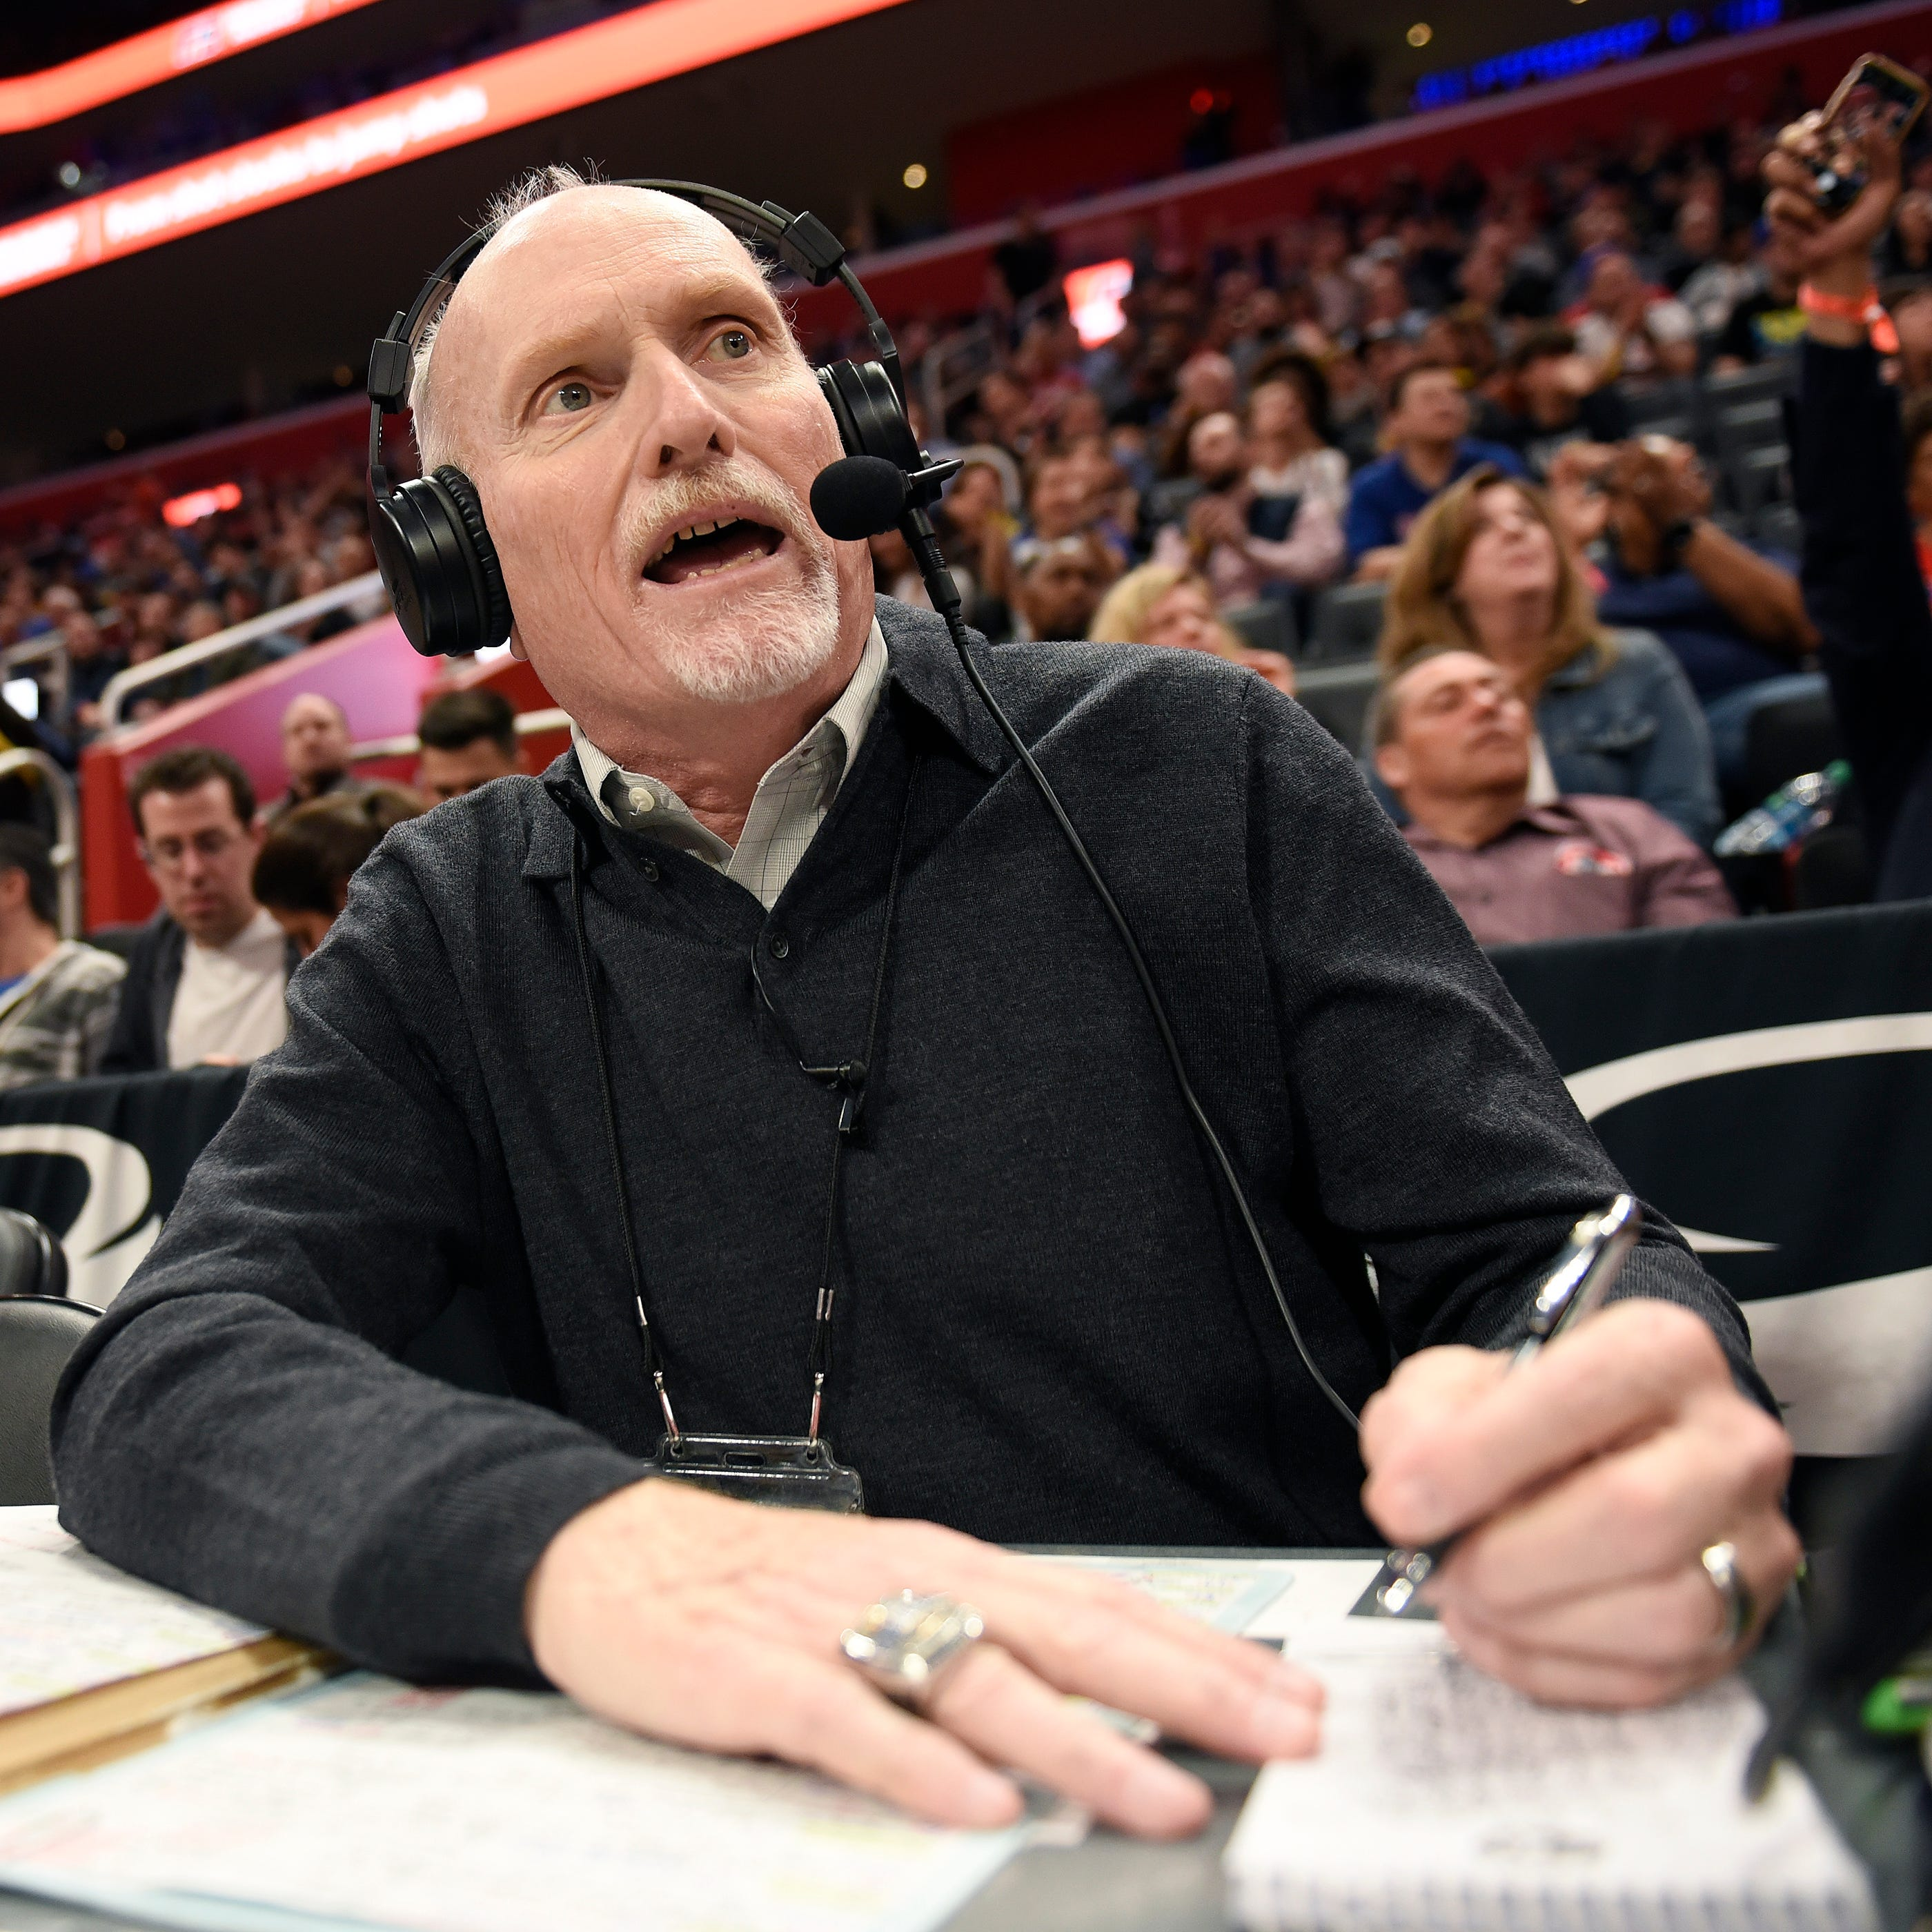 Champion-caliber: Pistons' radio voice feeling fortunate after 50 years of calls